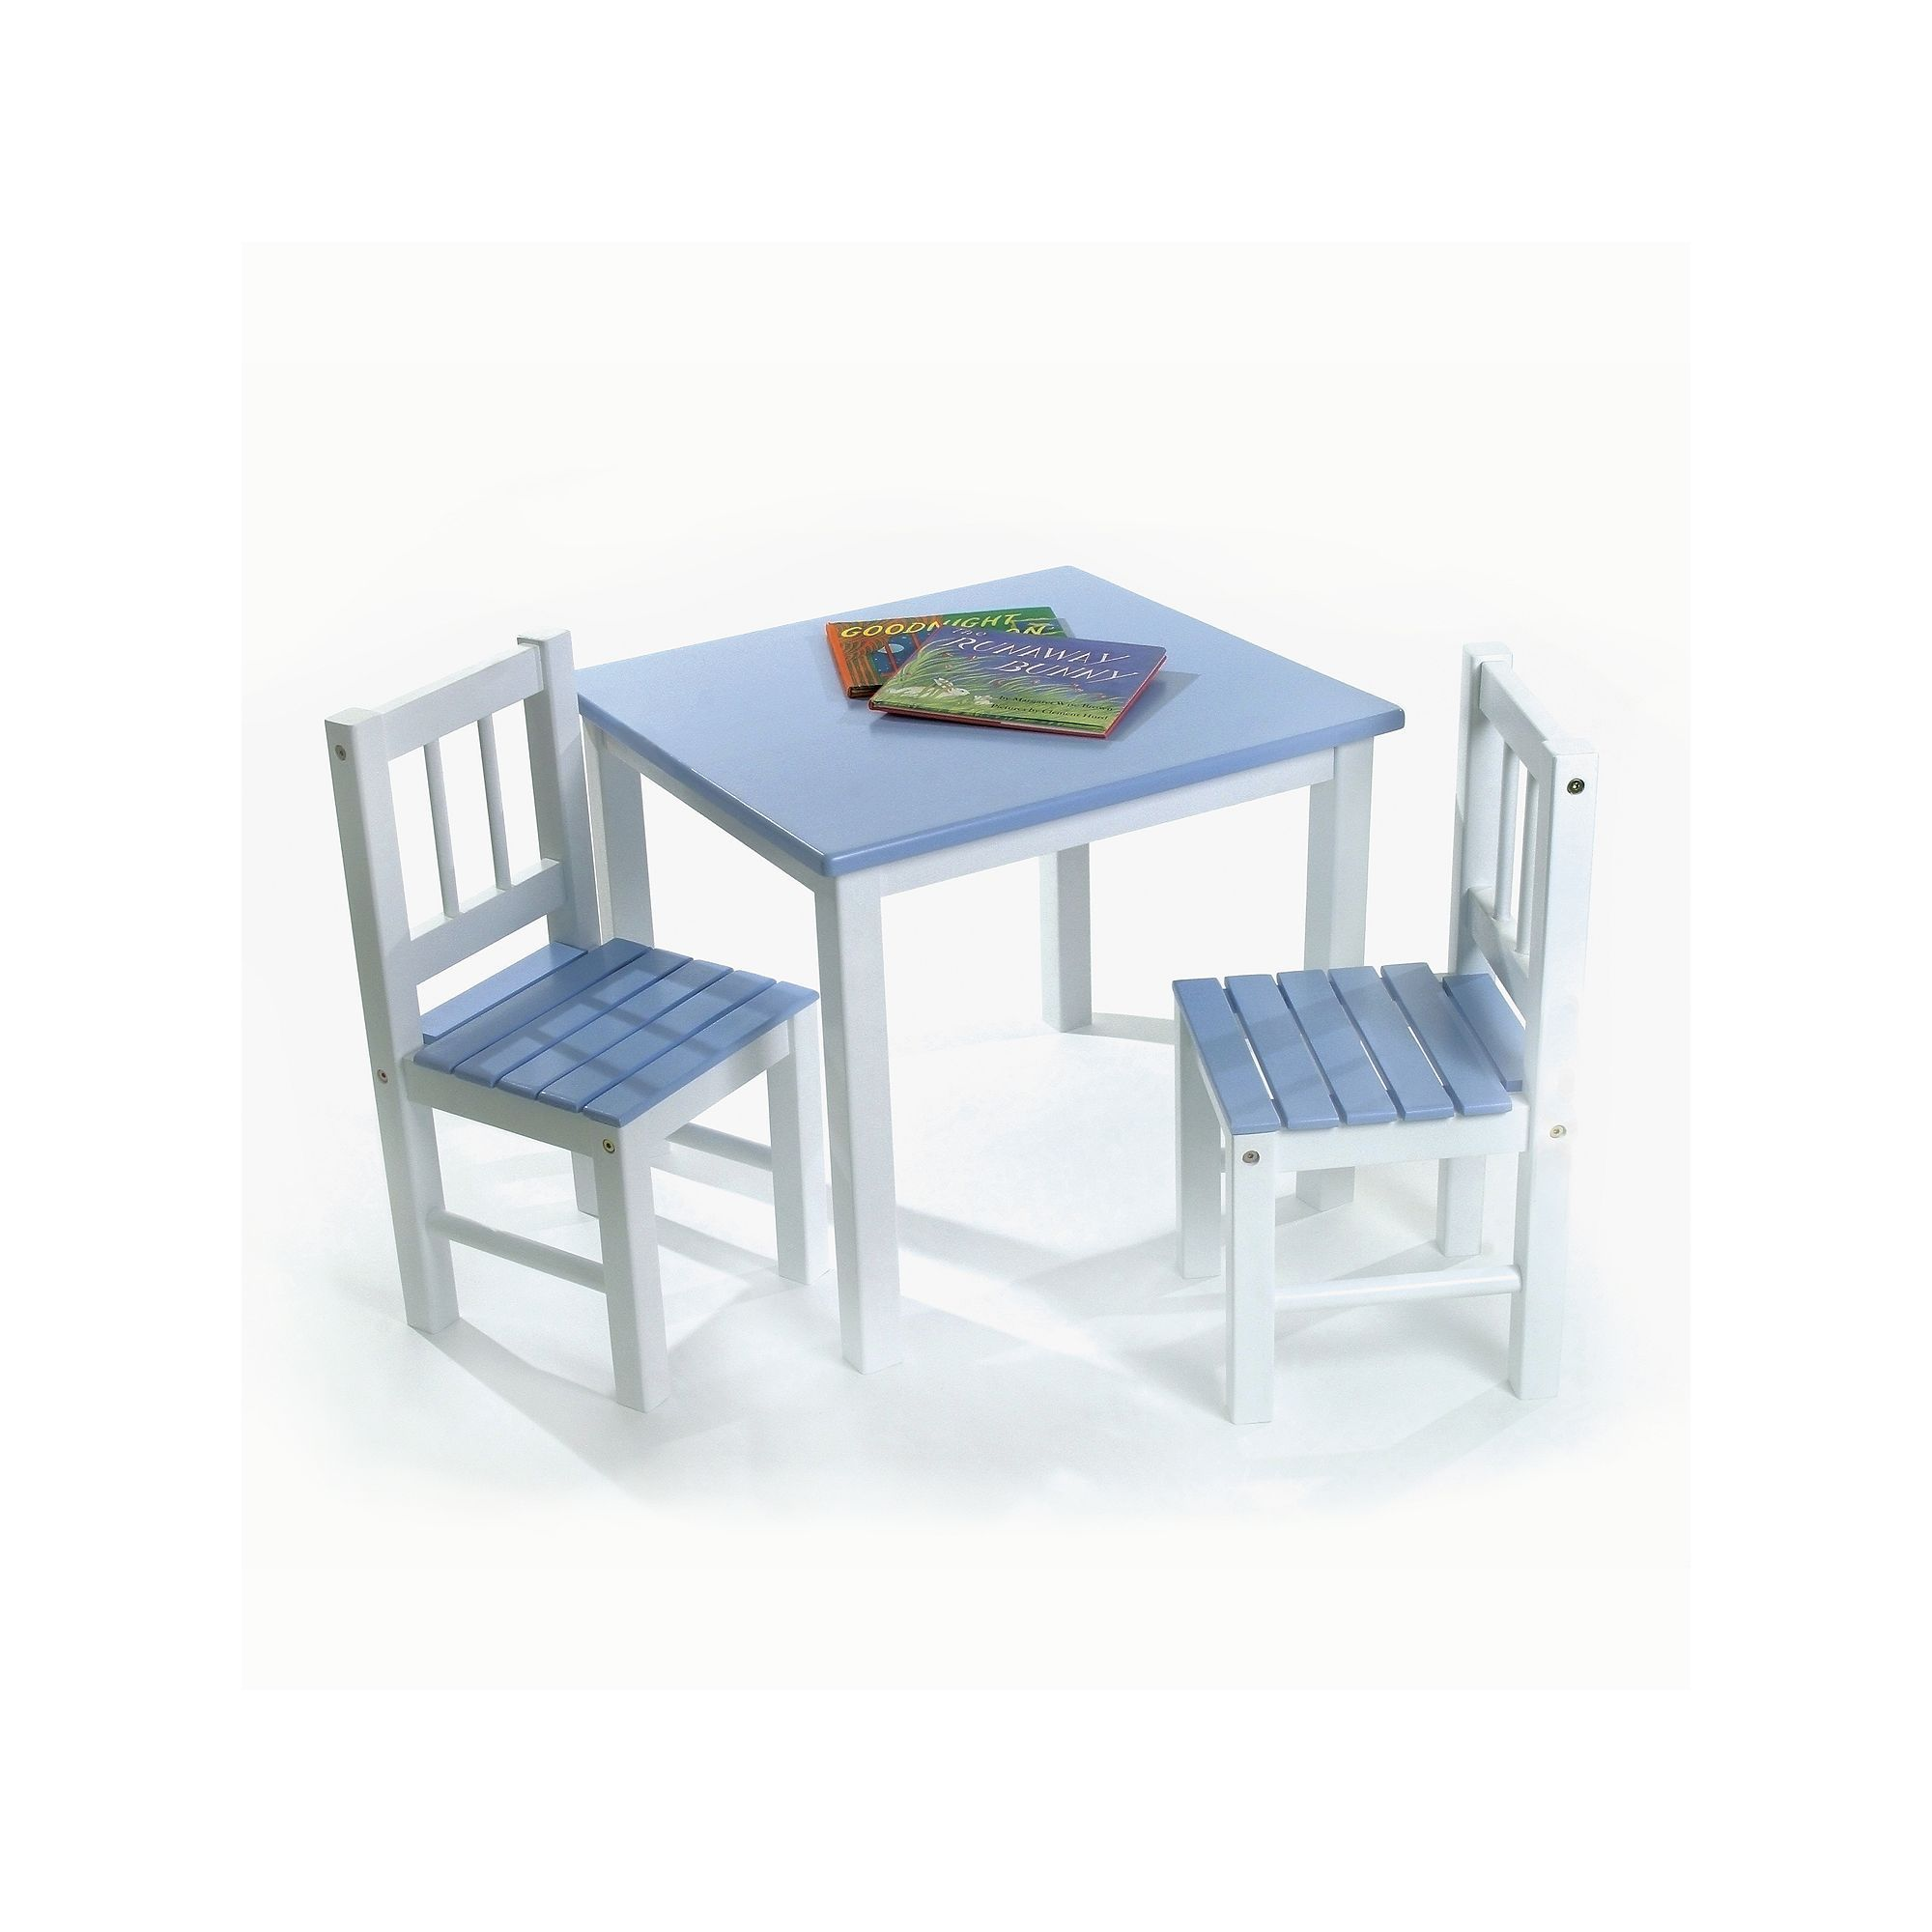 Lipper Children\u0027s Table and Chairs Set ...  sc 1 st  Pinterest & Lipper Children\u0027s Table and Chairs Set Green | Products